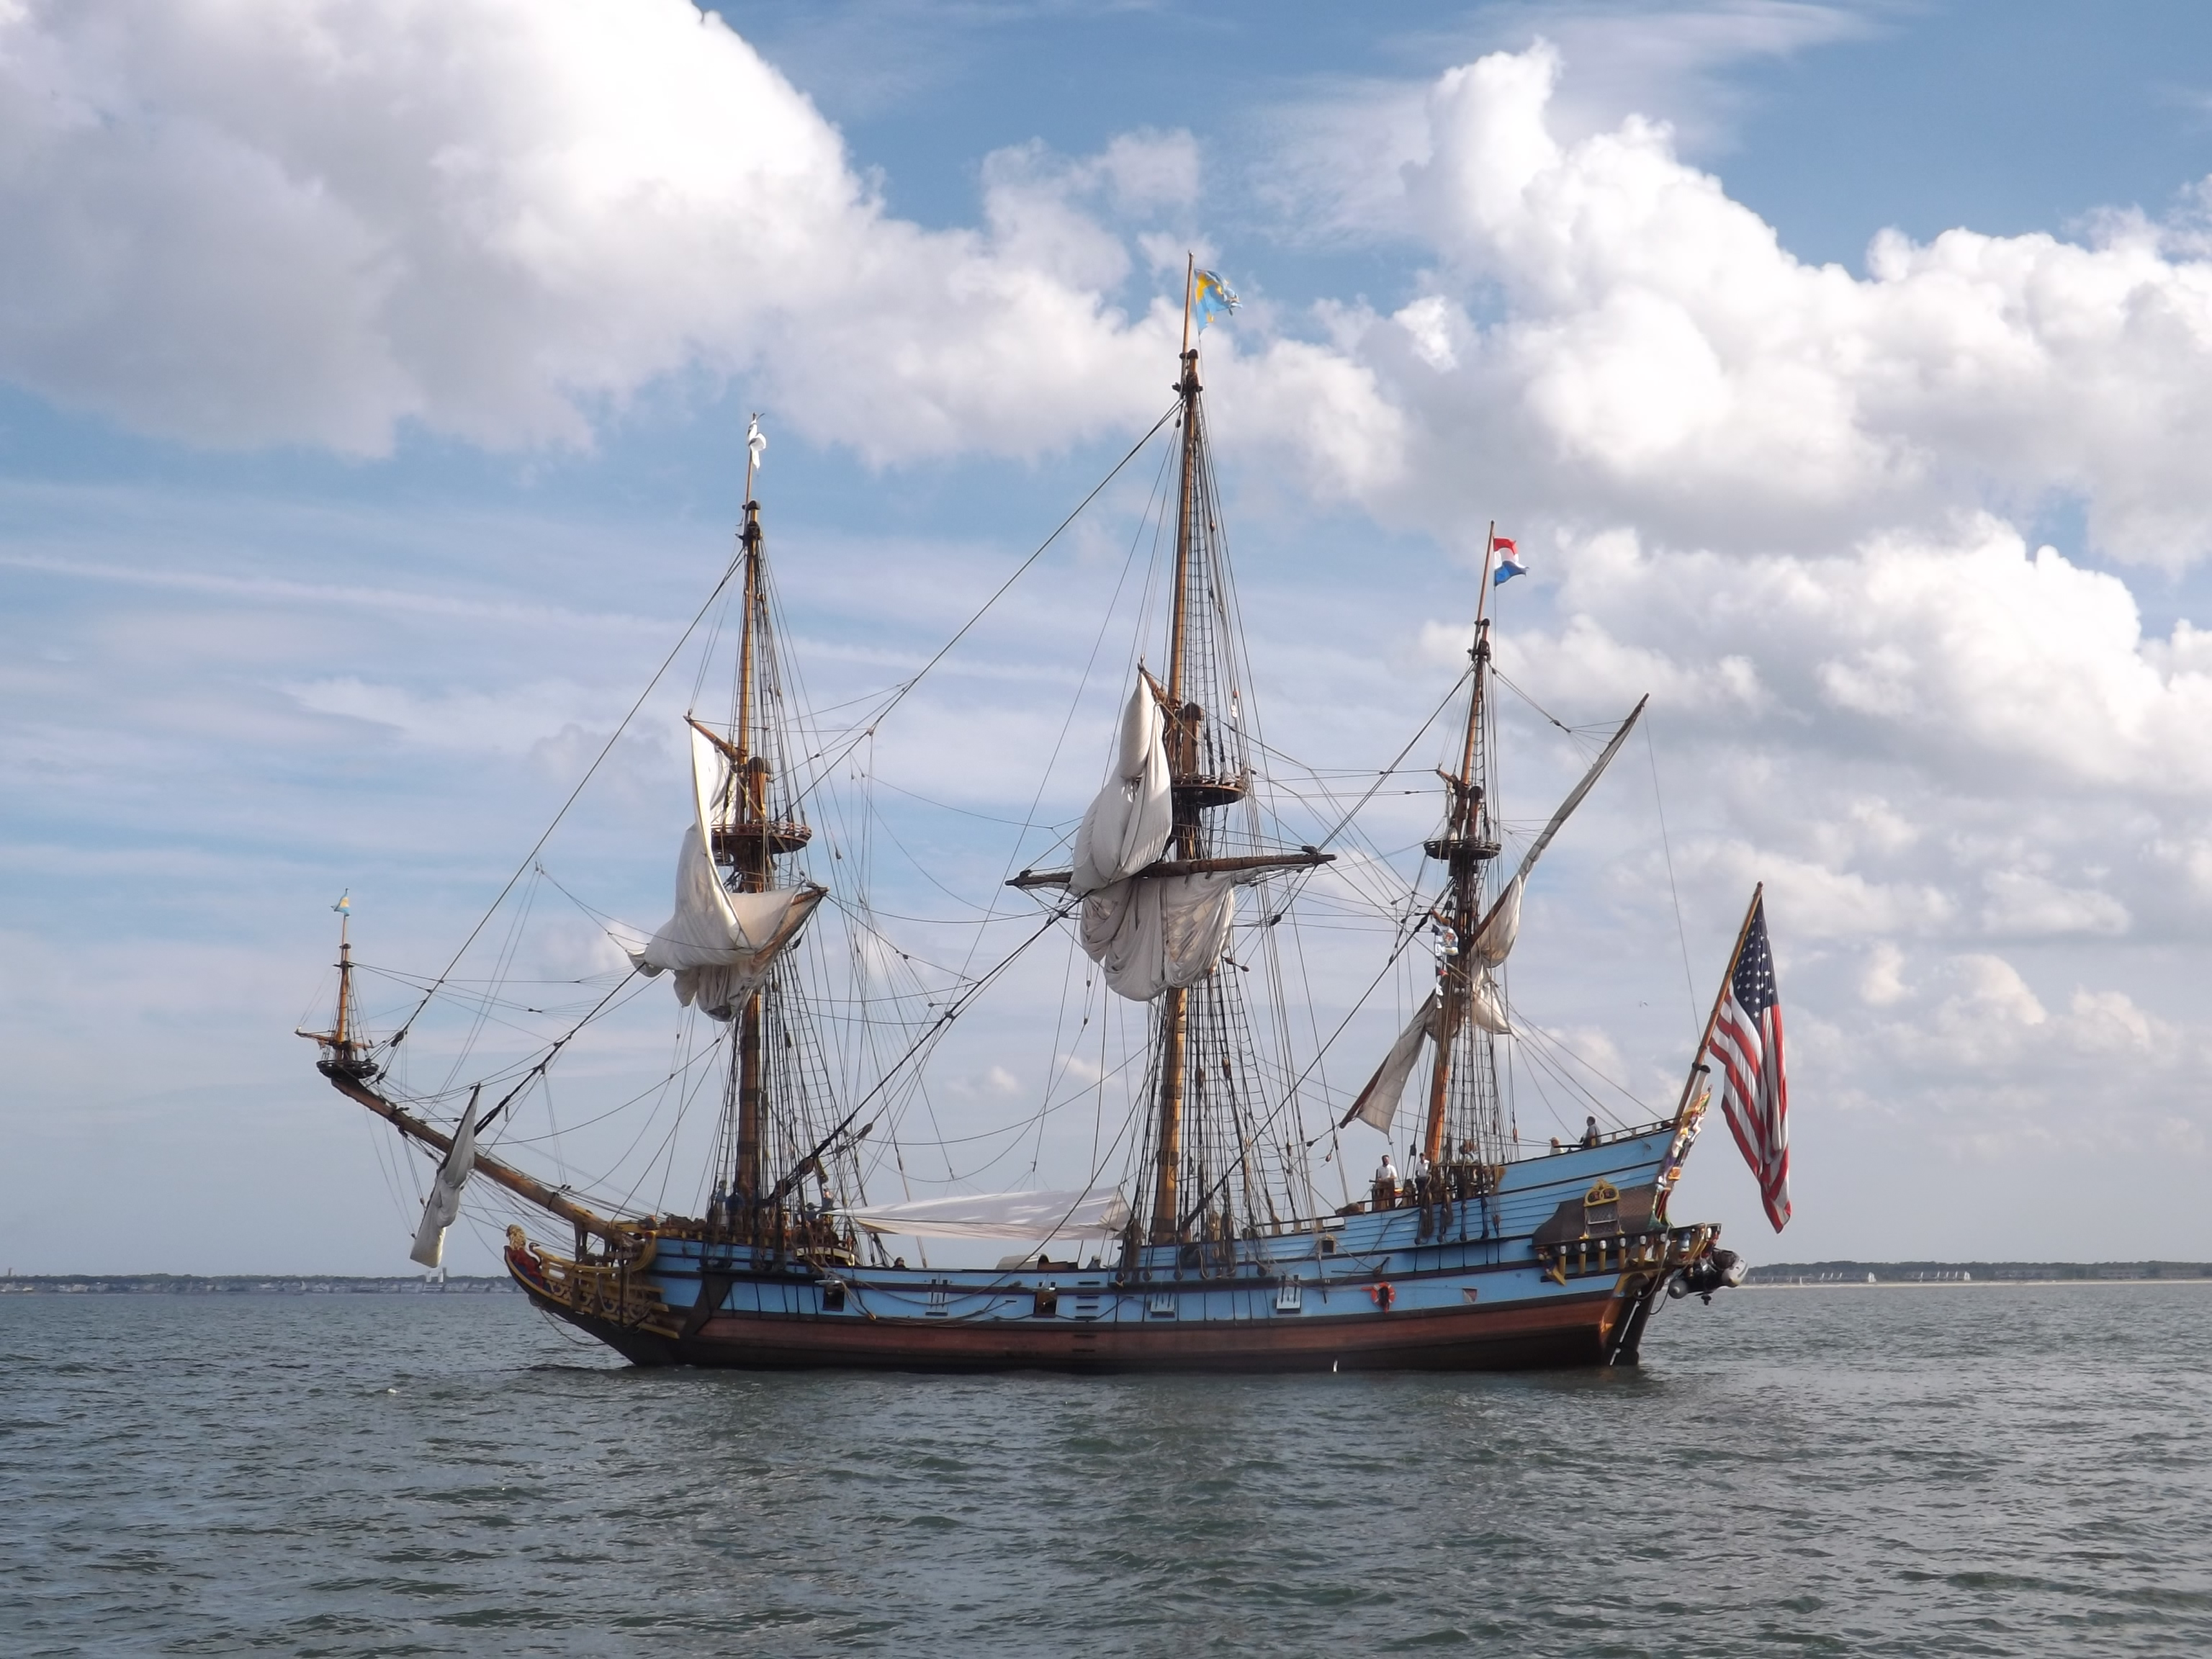 delaware tall ship, kalmar nyckel, sussex county, harbor of safe refuge, cape may lewes ferry,